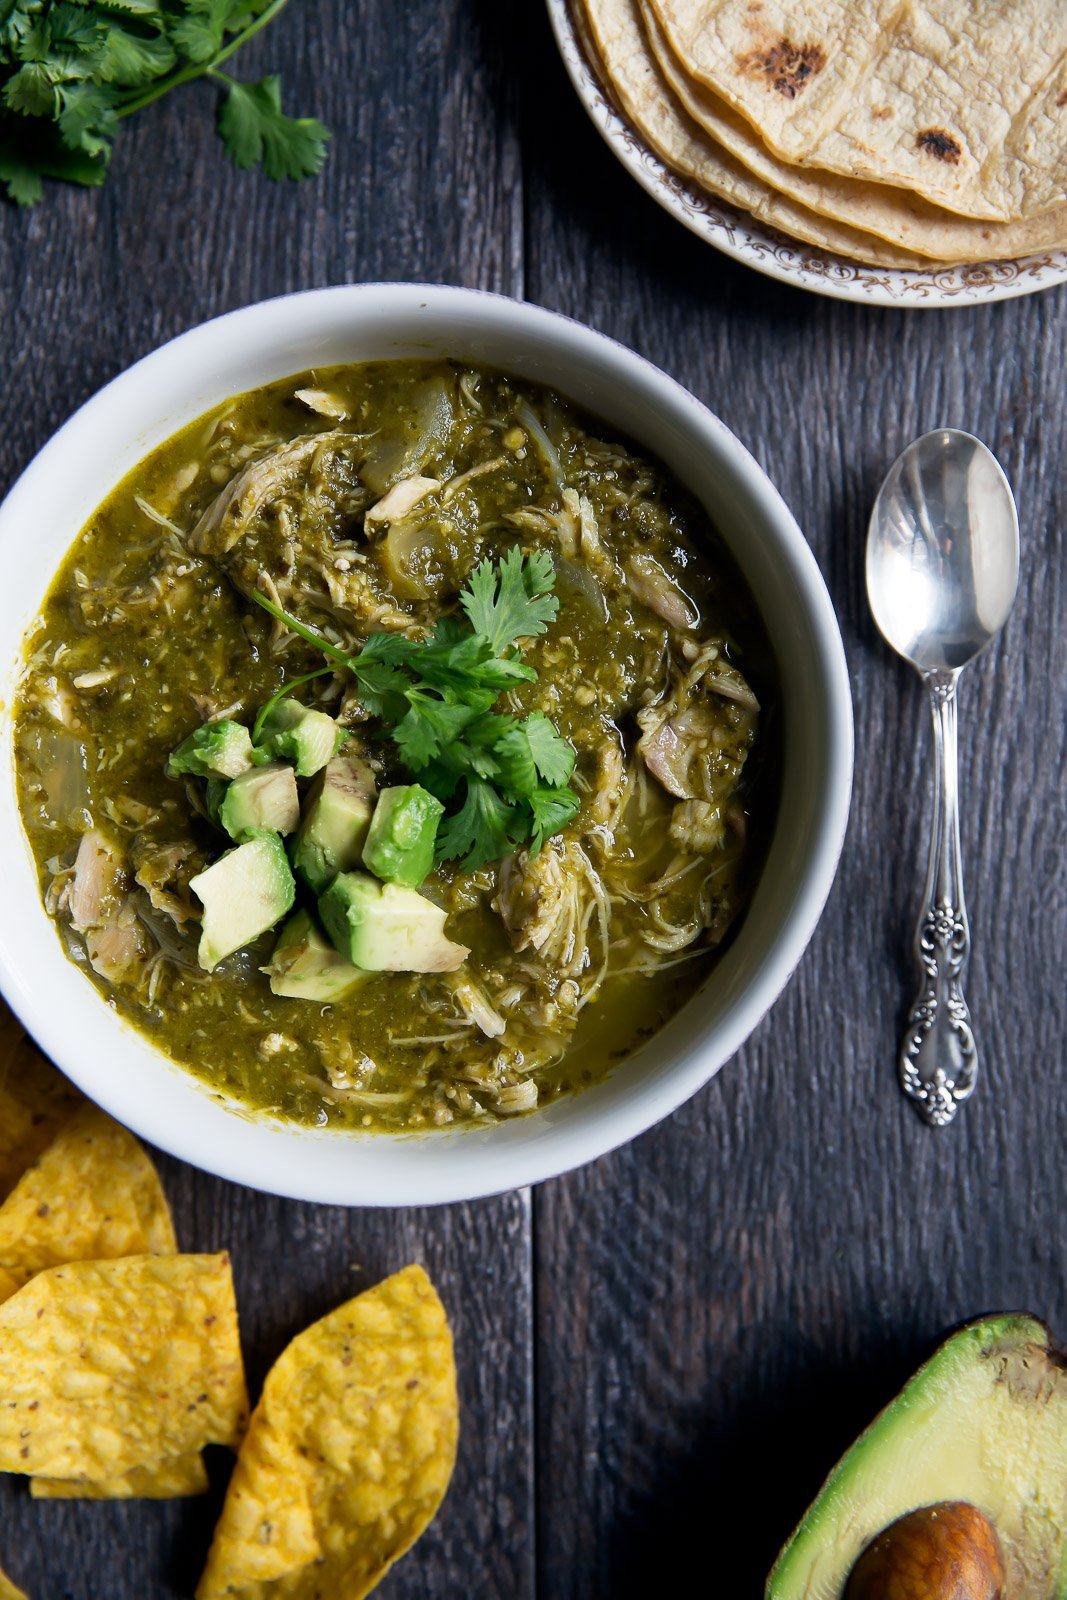 Food 1 2016 4 25 Spinach Butternut Squash Chicken Beef Chili >> Healthy Slow Cooker Chicken Chile Verde Ambitious Kitchen